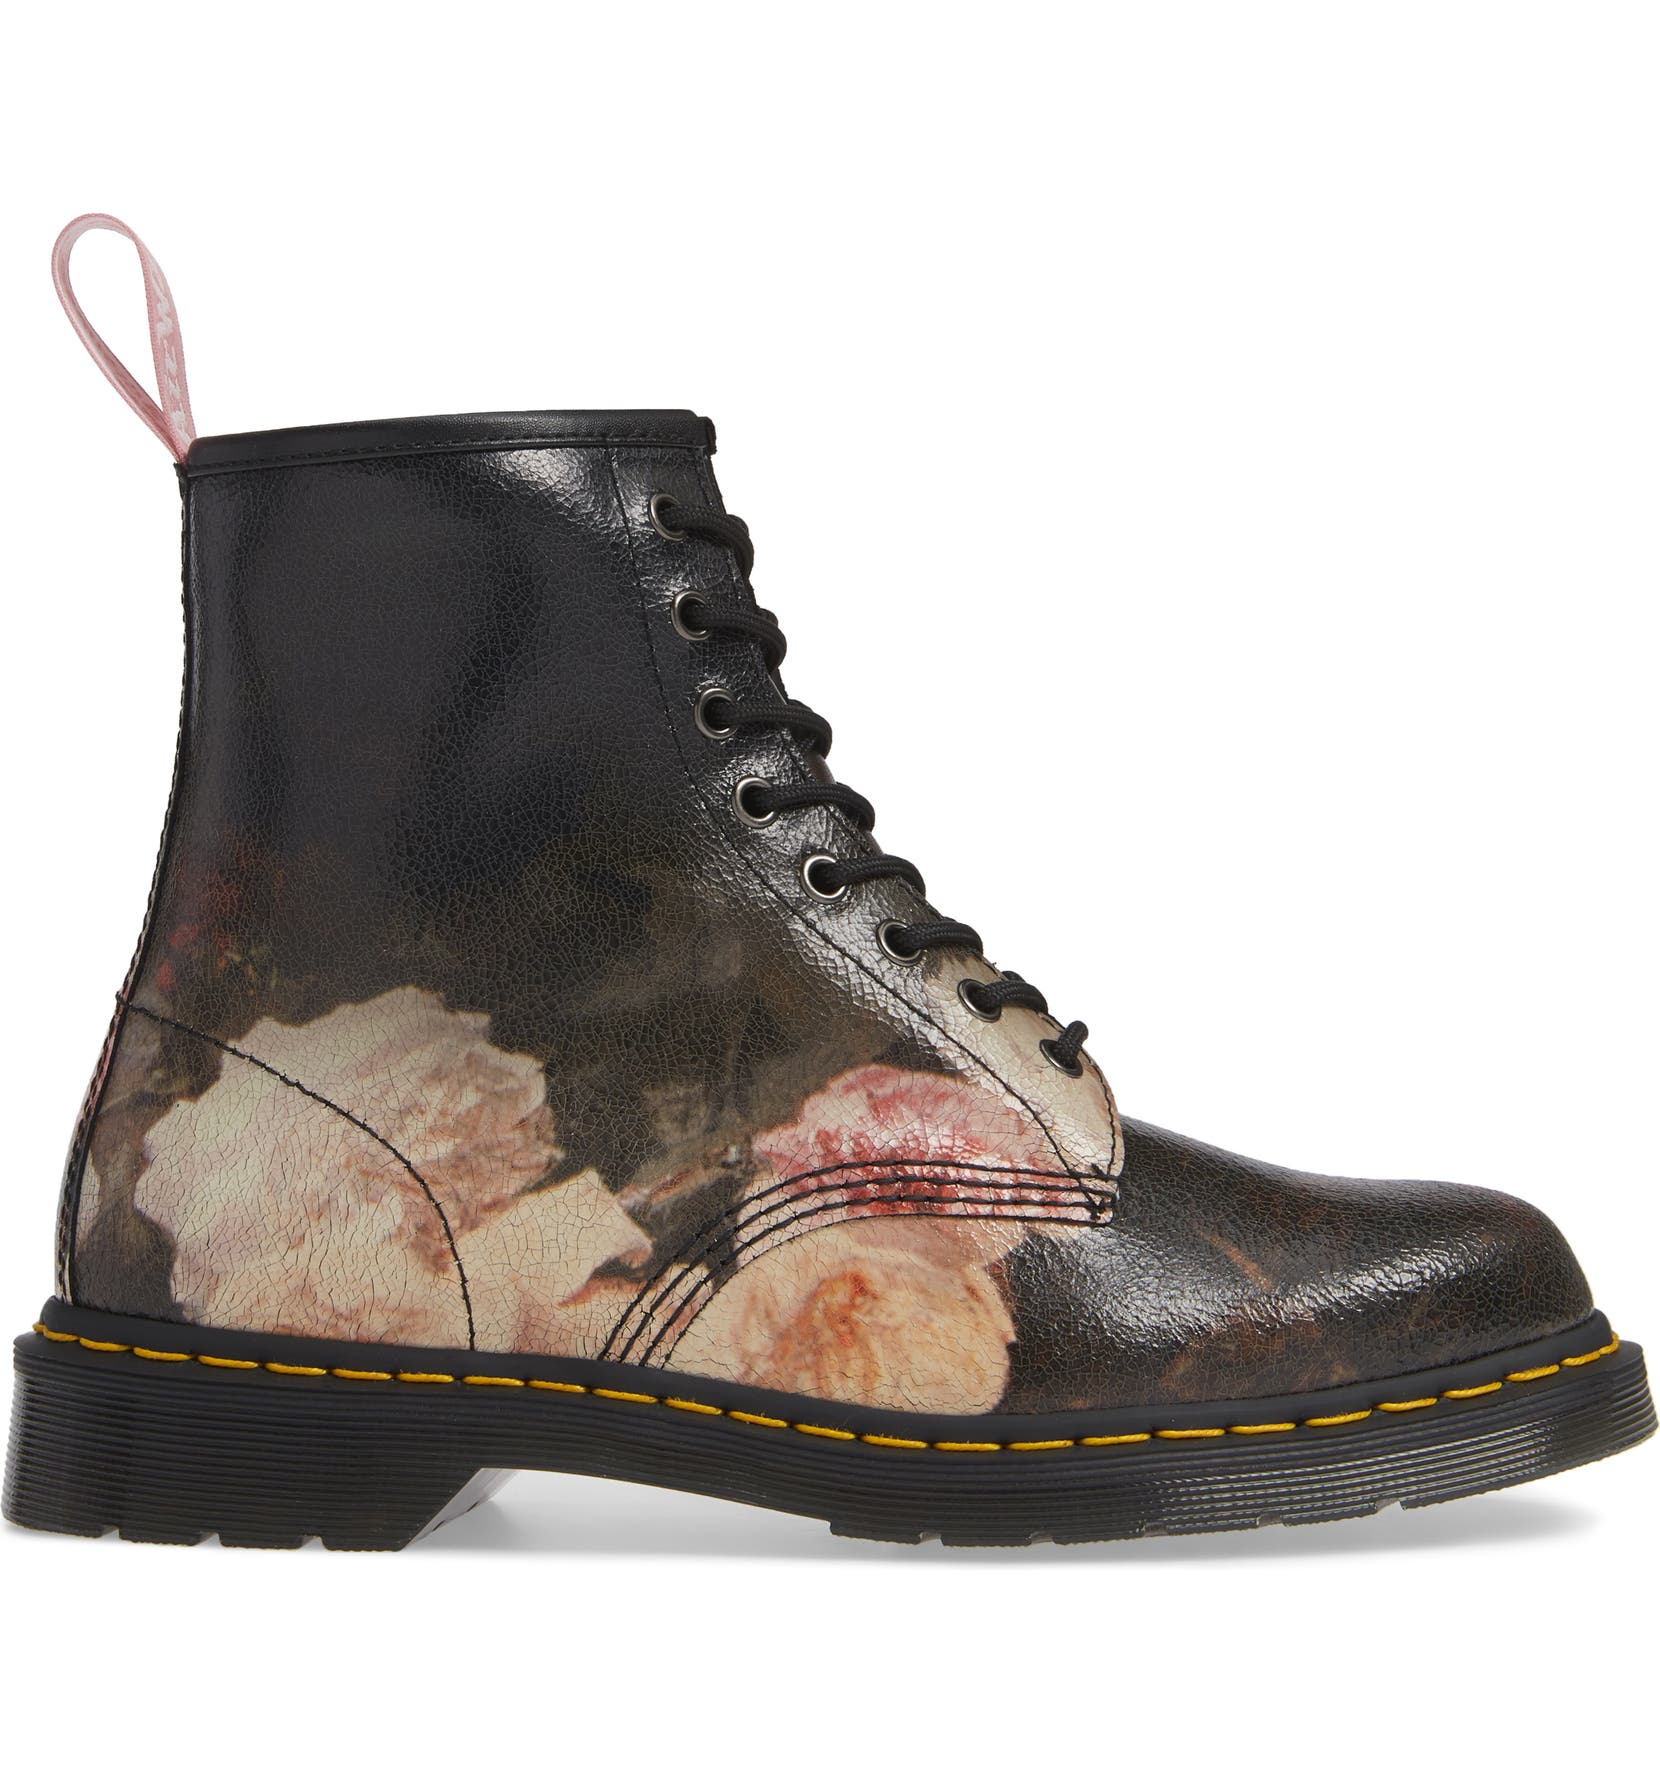 1460 Power Et Bottines Dr Martens Bottes cRjLq5A34